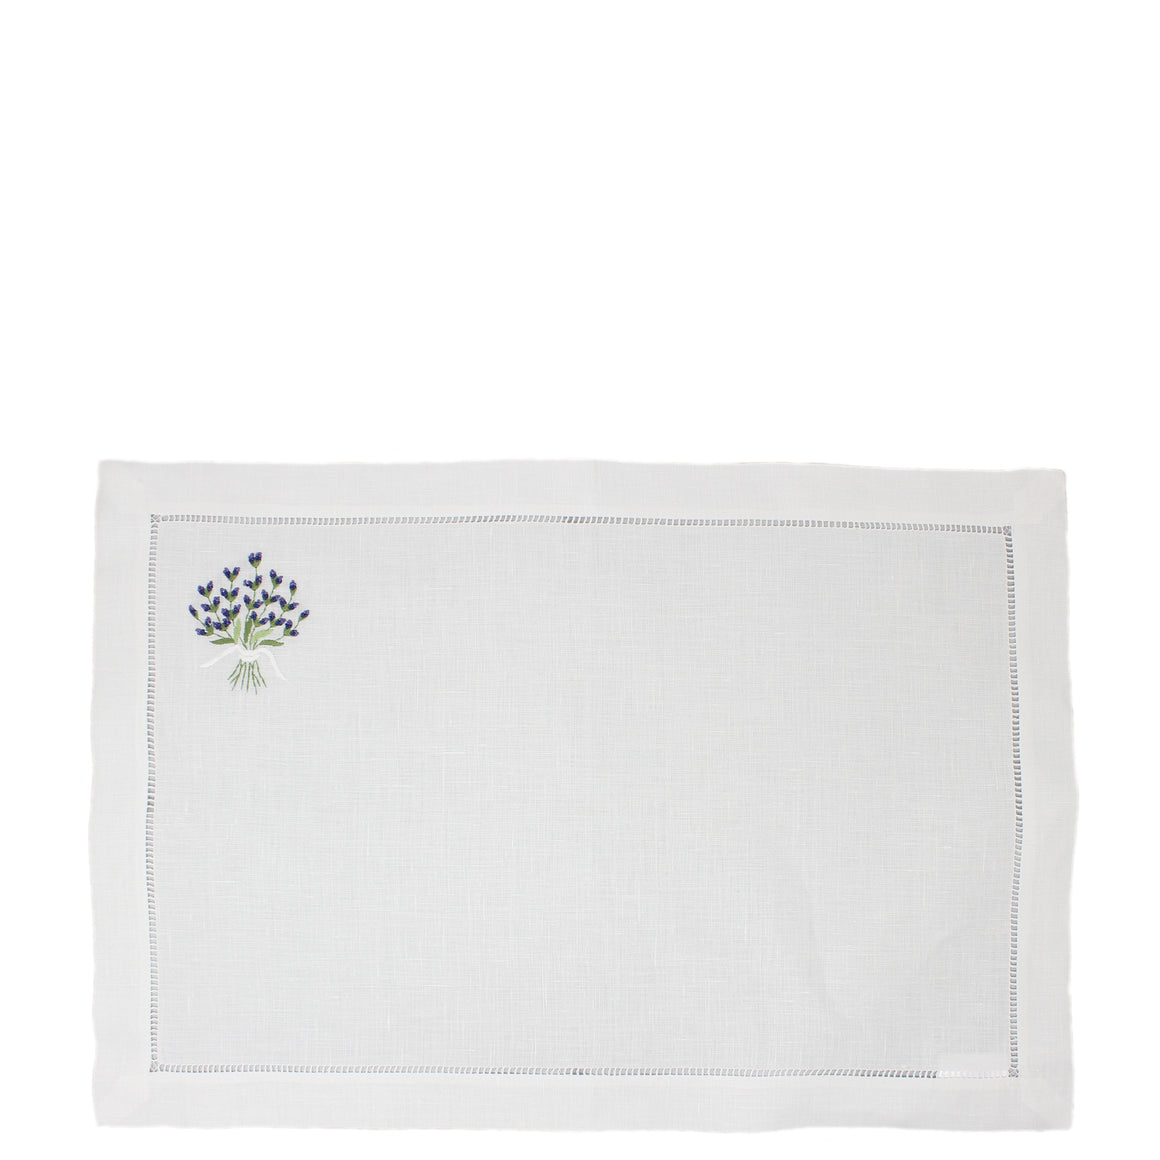 hand embroidered linen placemat - lavender design